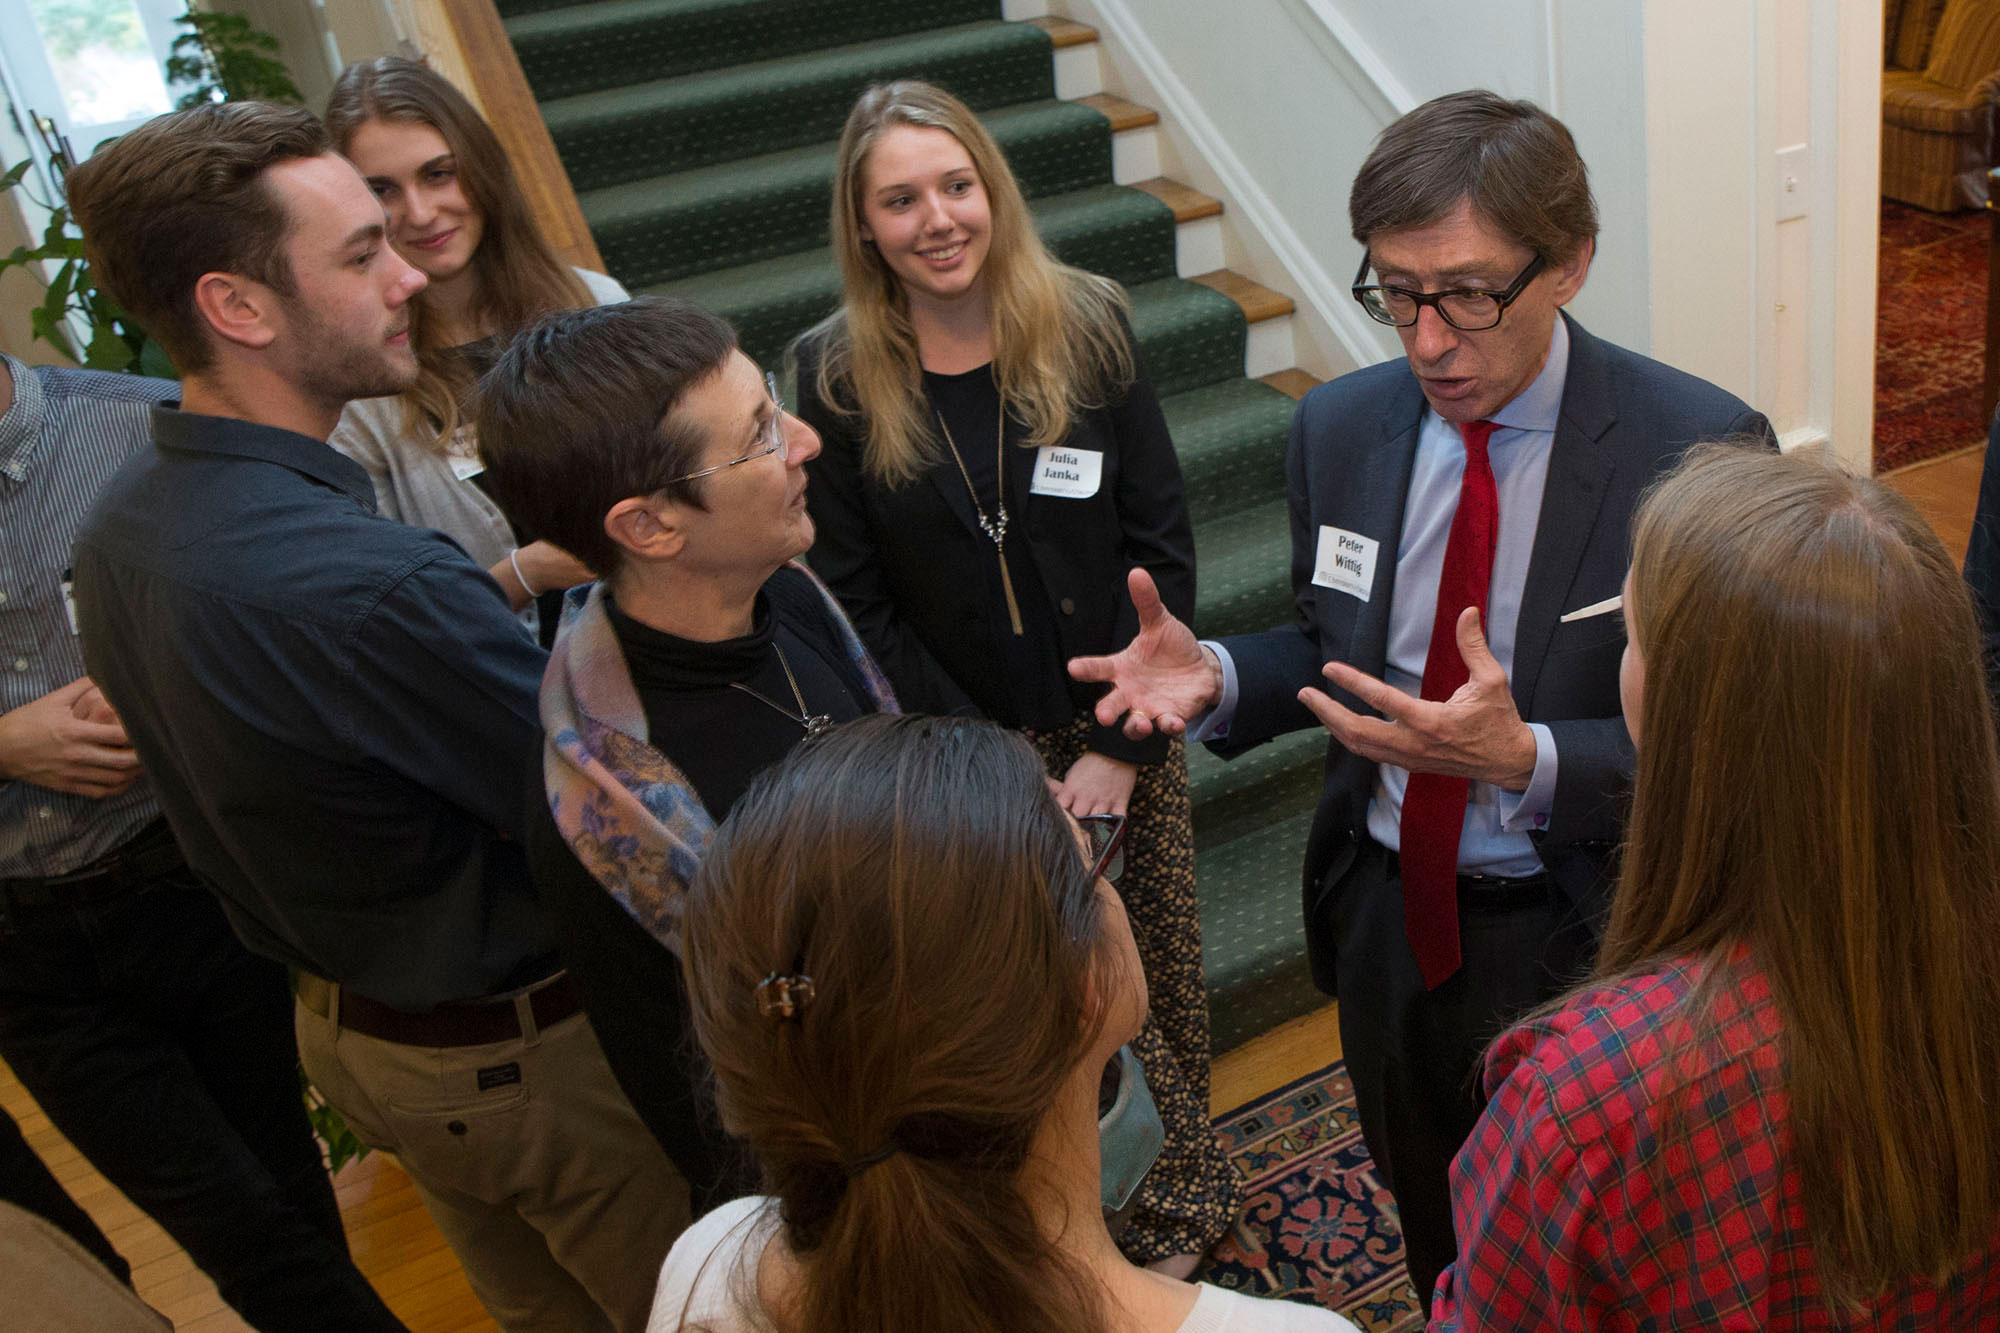 German Ambassador to the U.S. Peter Wittig with students